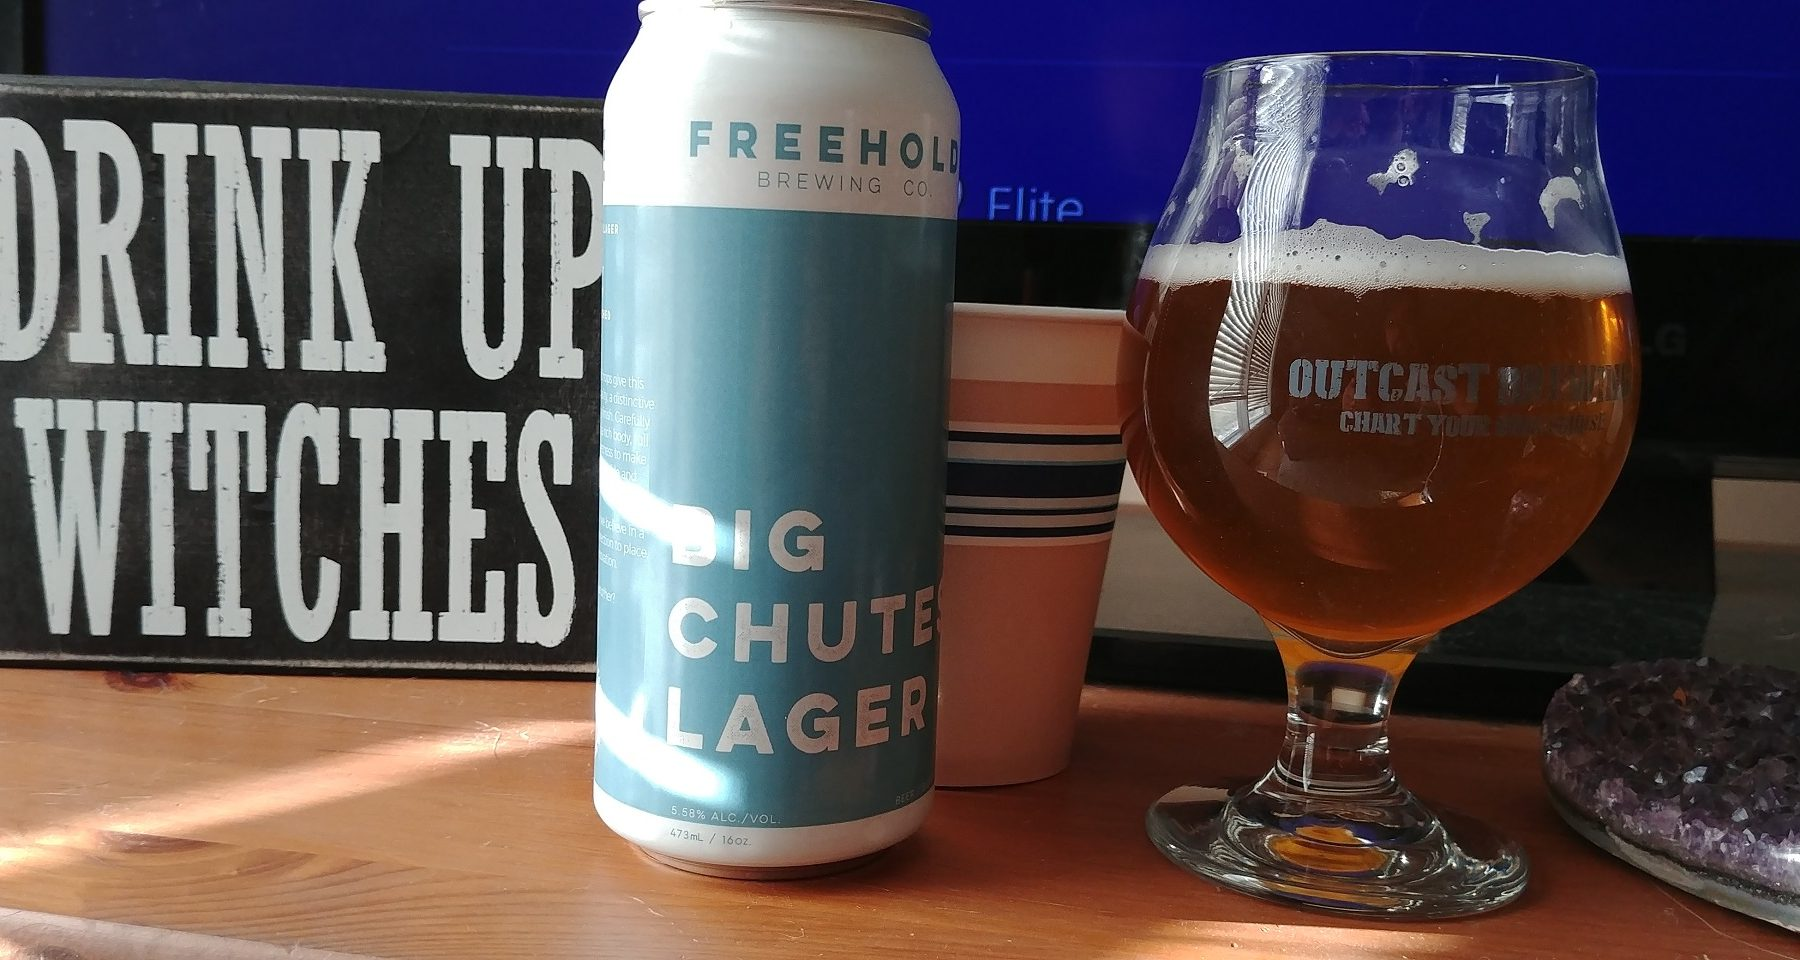 VIDEO: Freehold Brewing, Big Chutes Lager Review